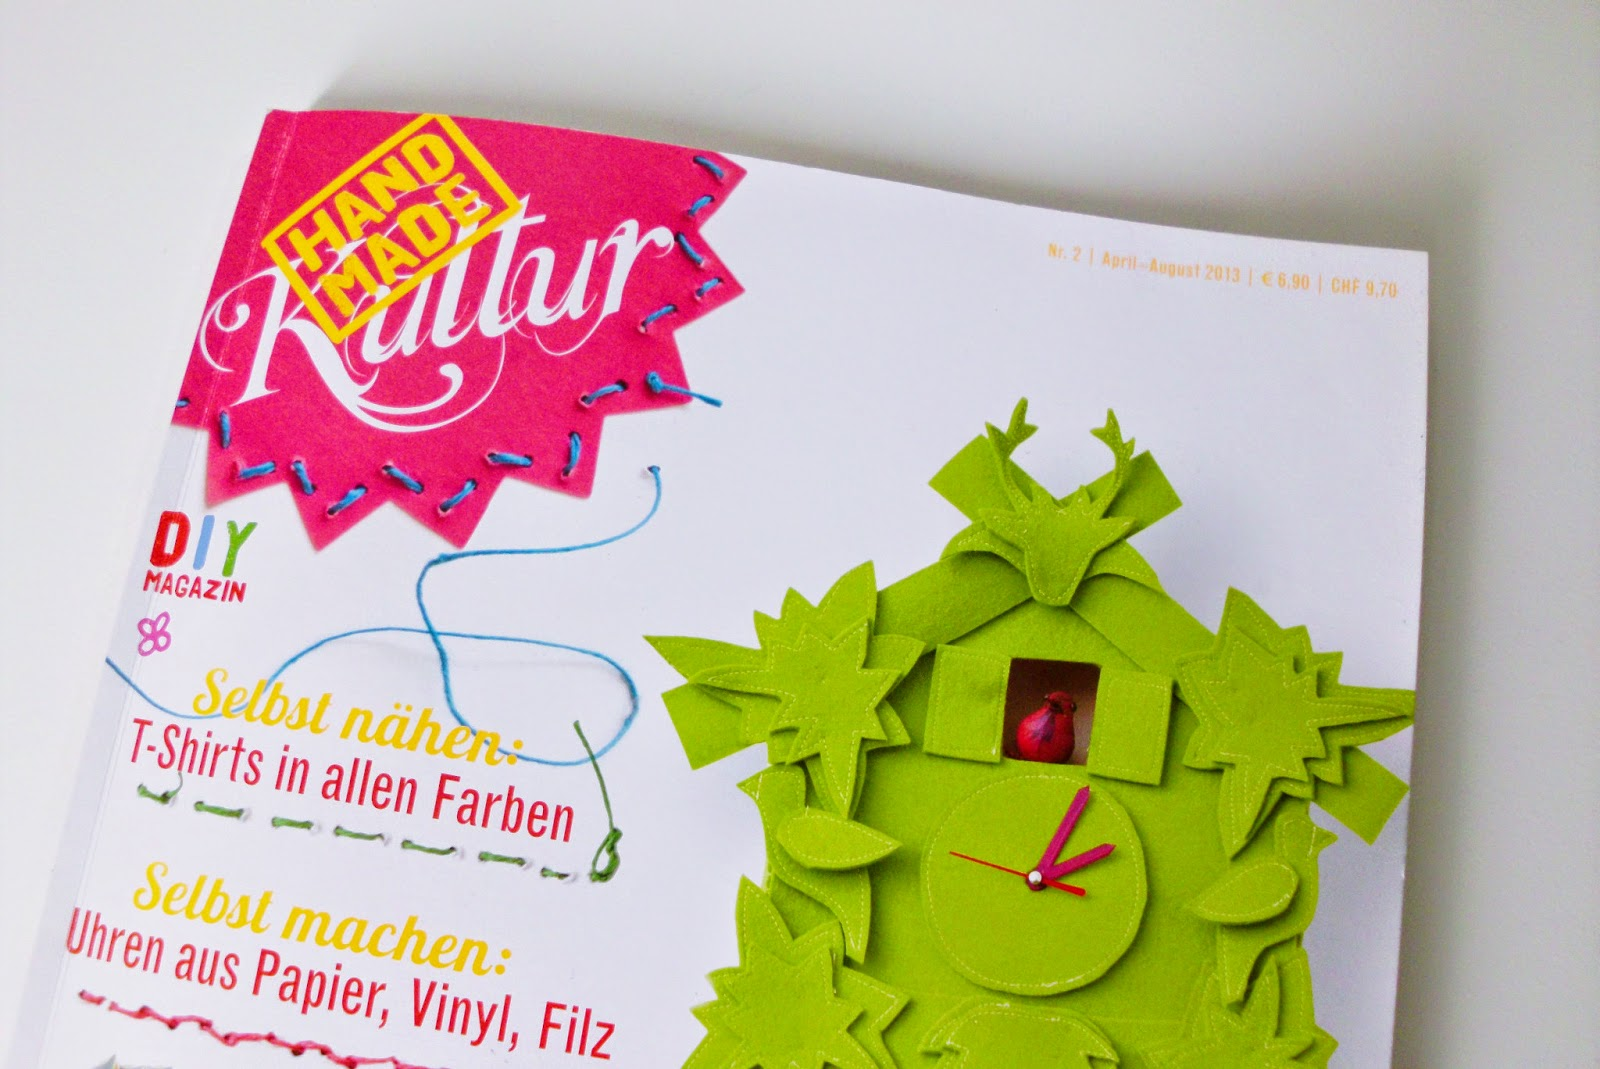 curious and catcat: a look into the handmade kultur magazine